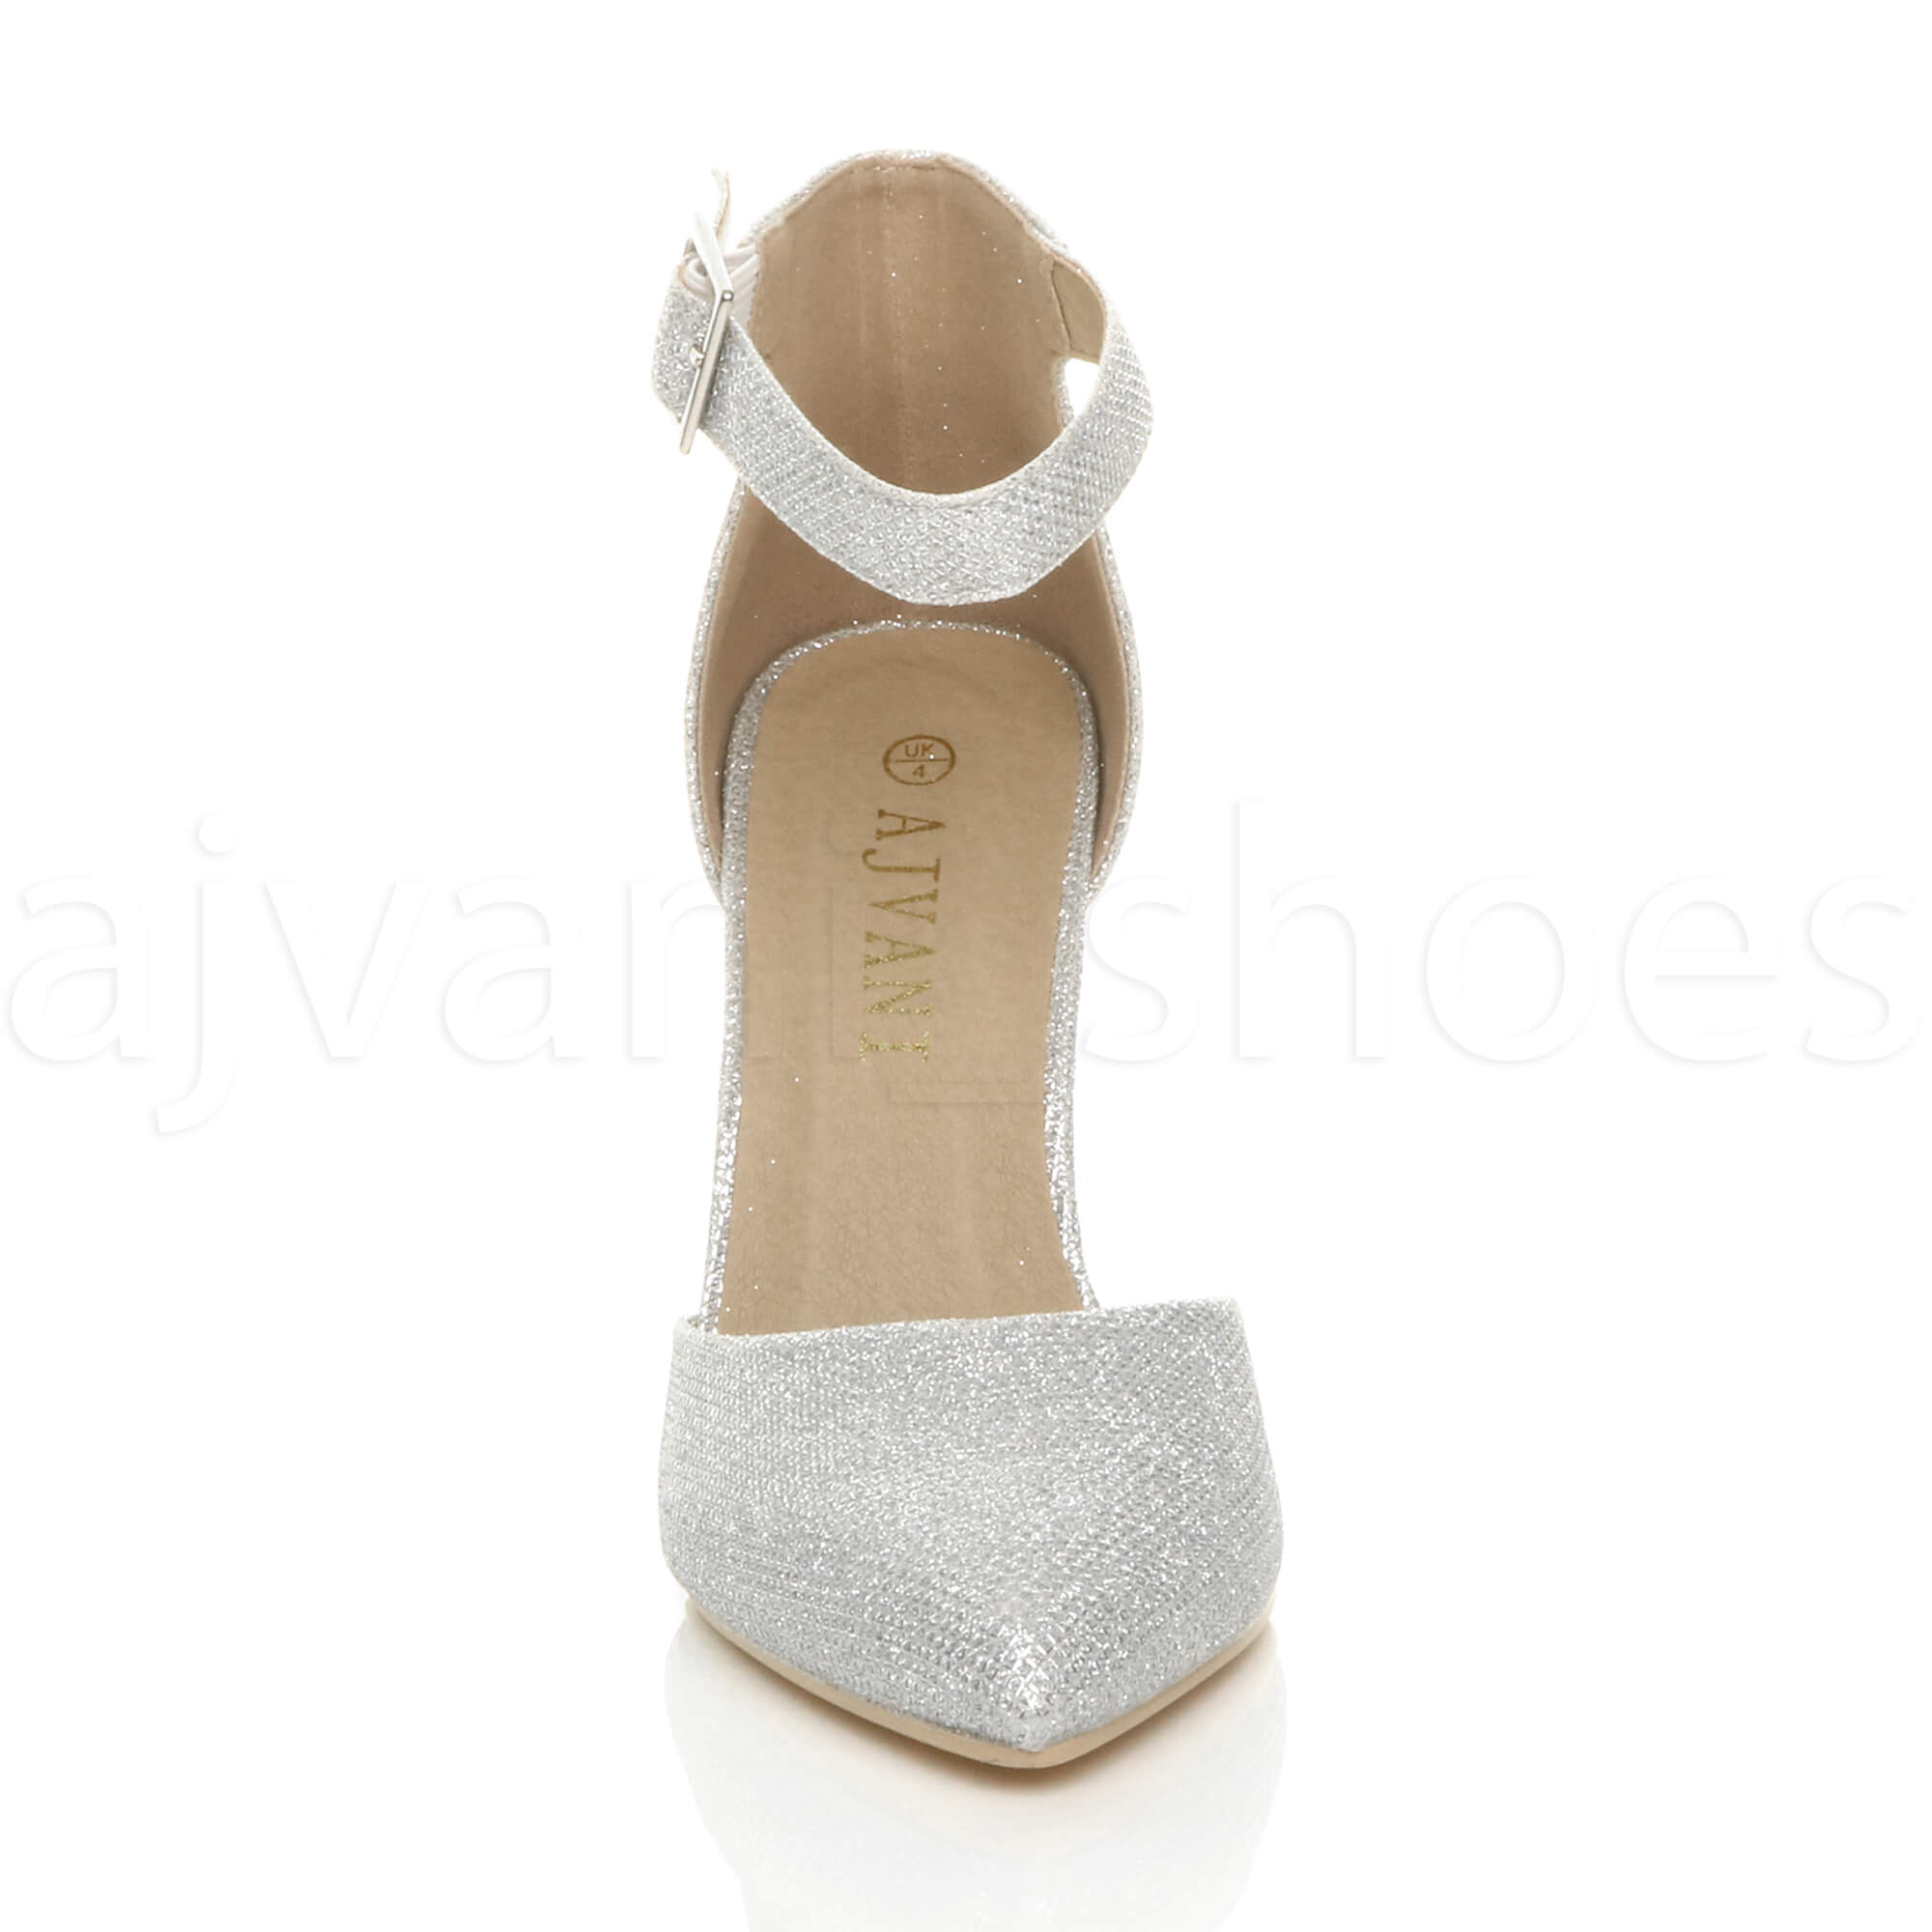 WOMENS-LADIES-HIGH-BLOCK-HEEL-ANKLE-STRAP-BUCKLE-POINTED-COURT-SHOES-SIZE thumbnail 181